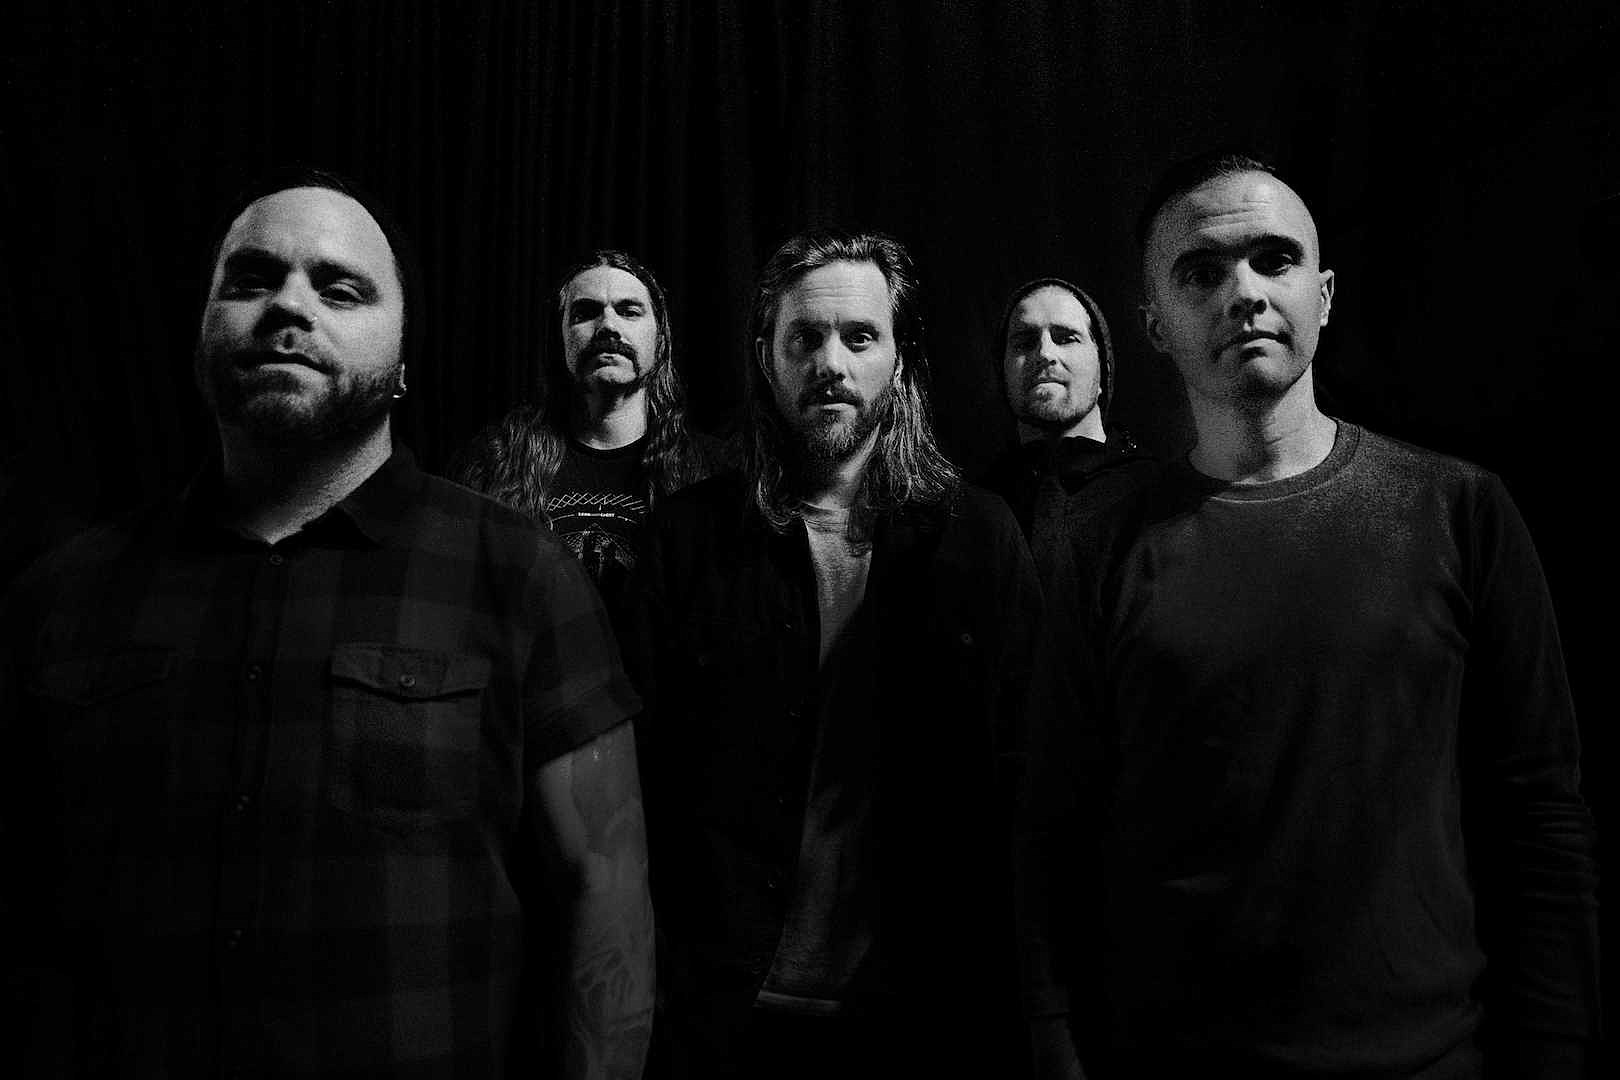 Between the Buried and Me Announce 'Automata' Double Album + U.S. Tour